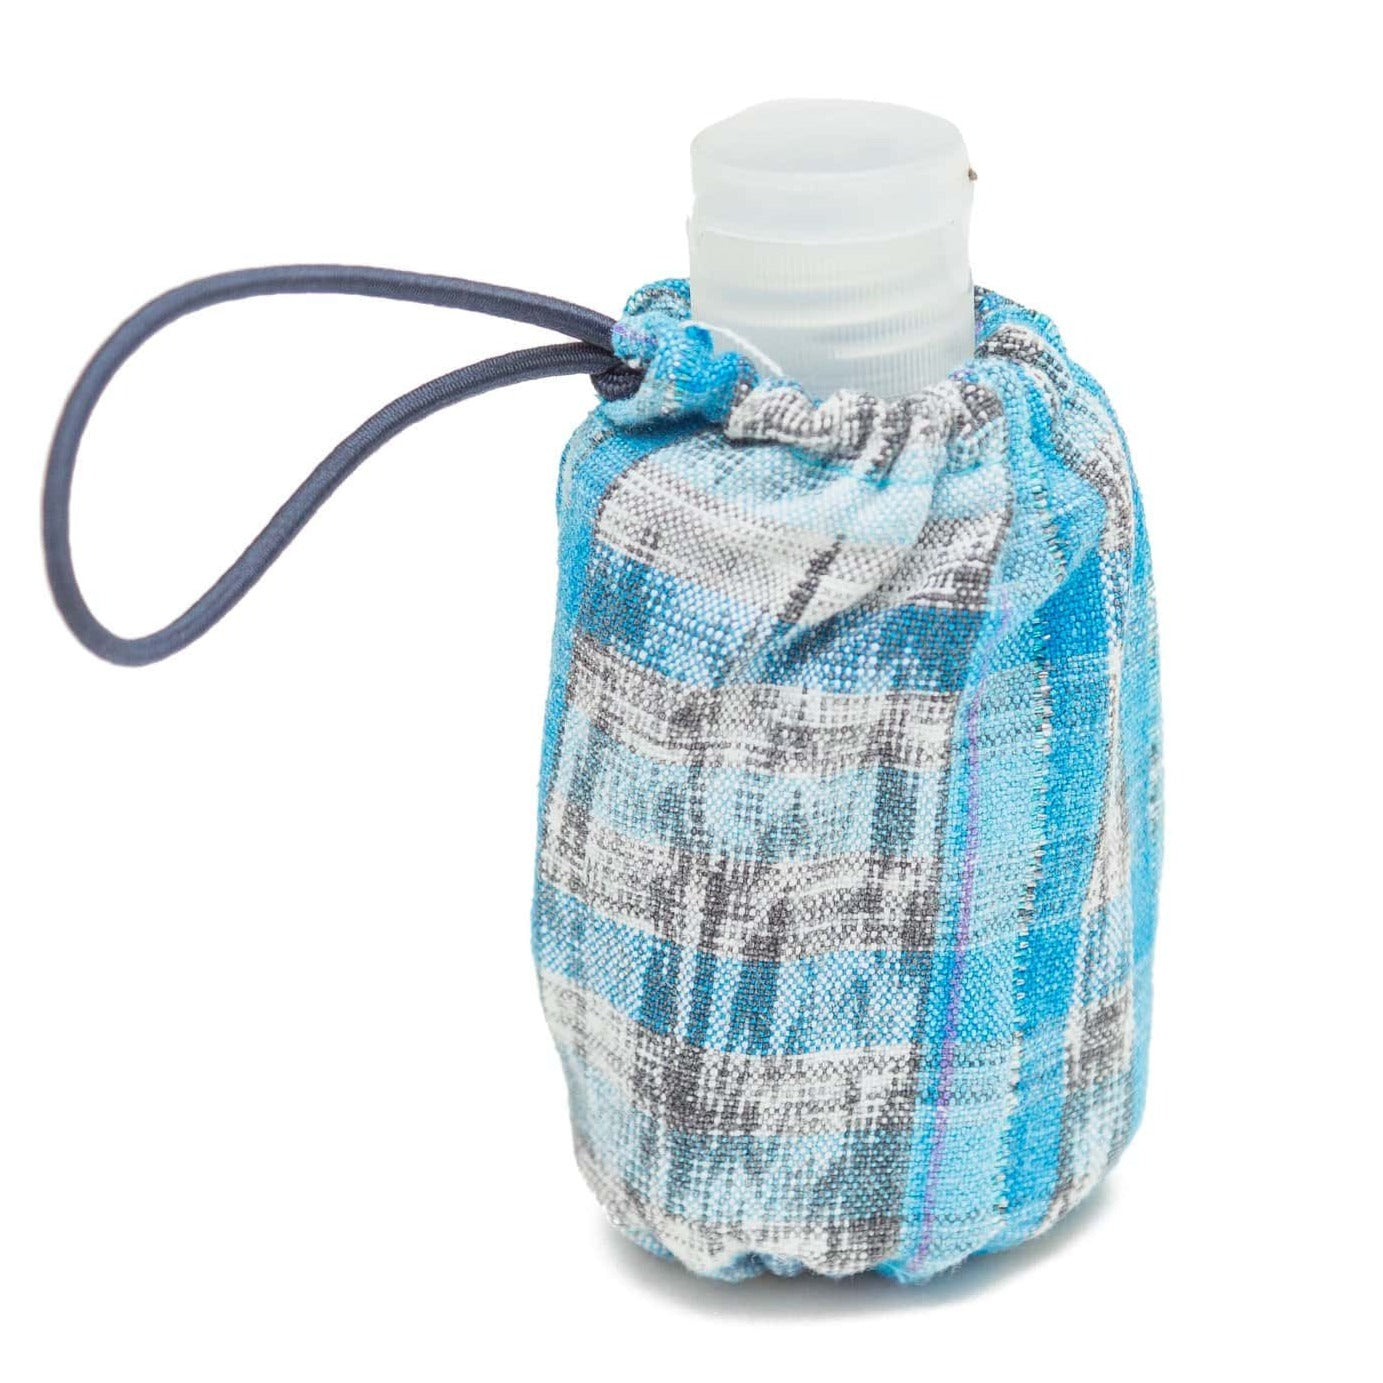 Mini Hand Sanitizer Holder